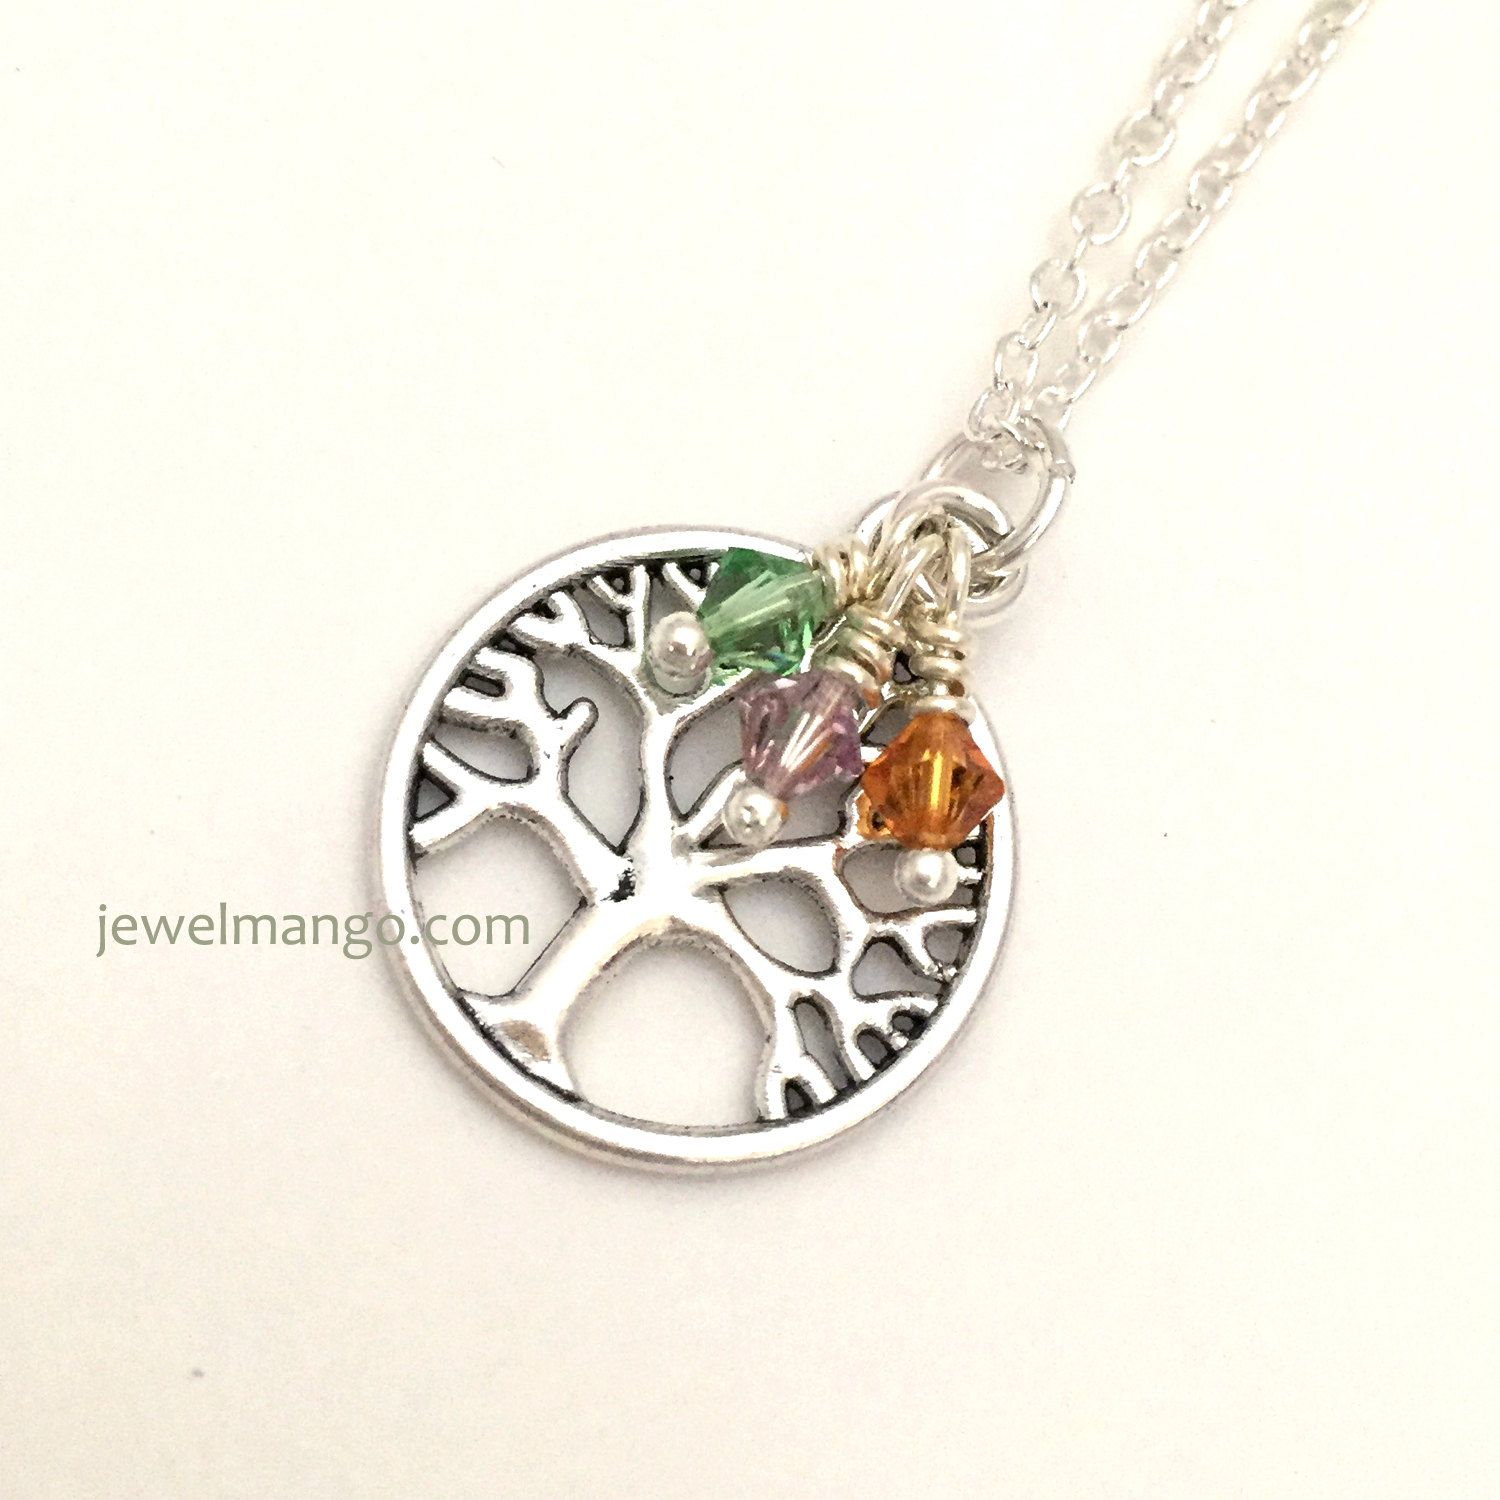 collections products pendant designs contagious necklace birthstone custom sterling family image tree necklaces silver